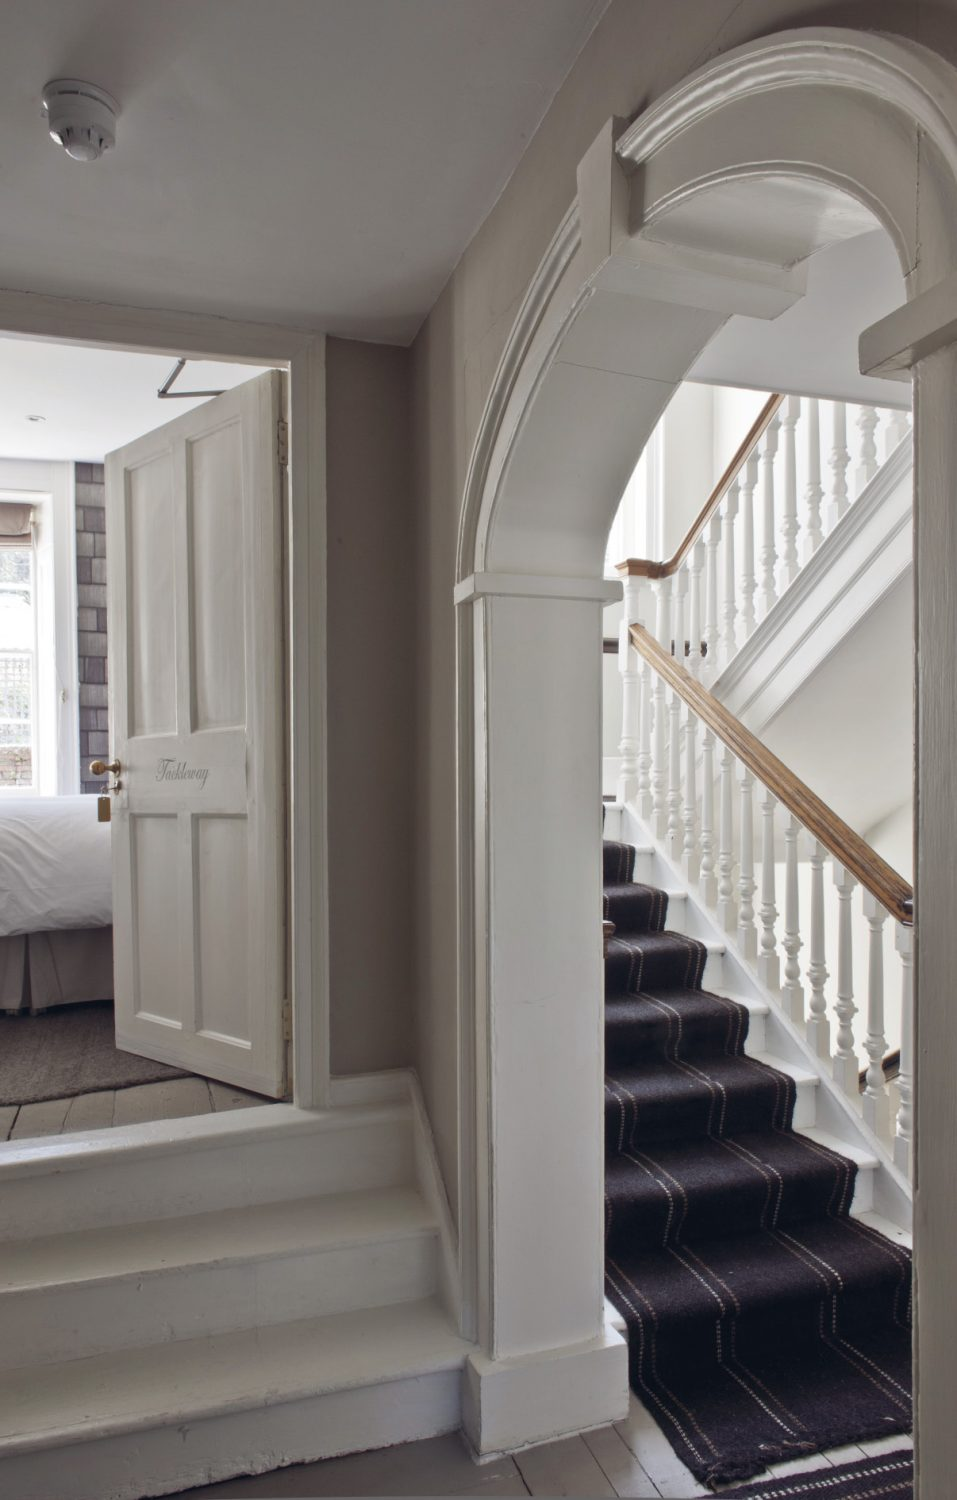 The staircase winds its way up to the guest rooms